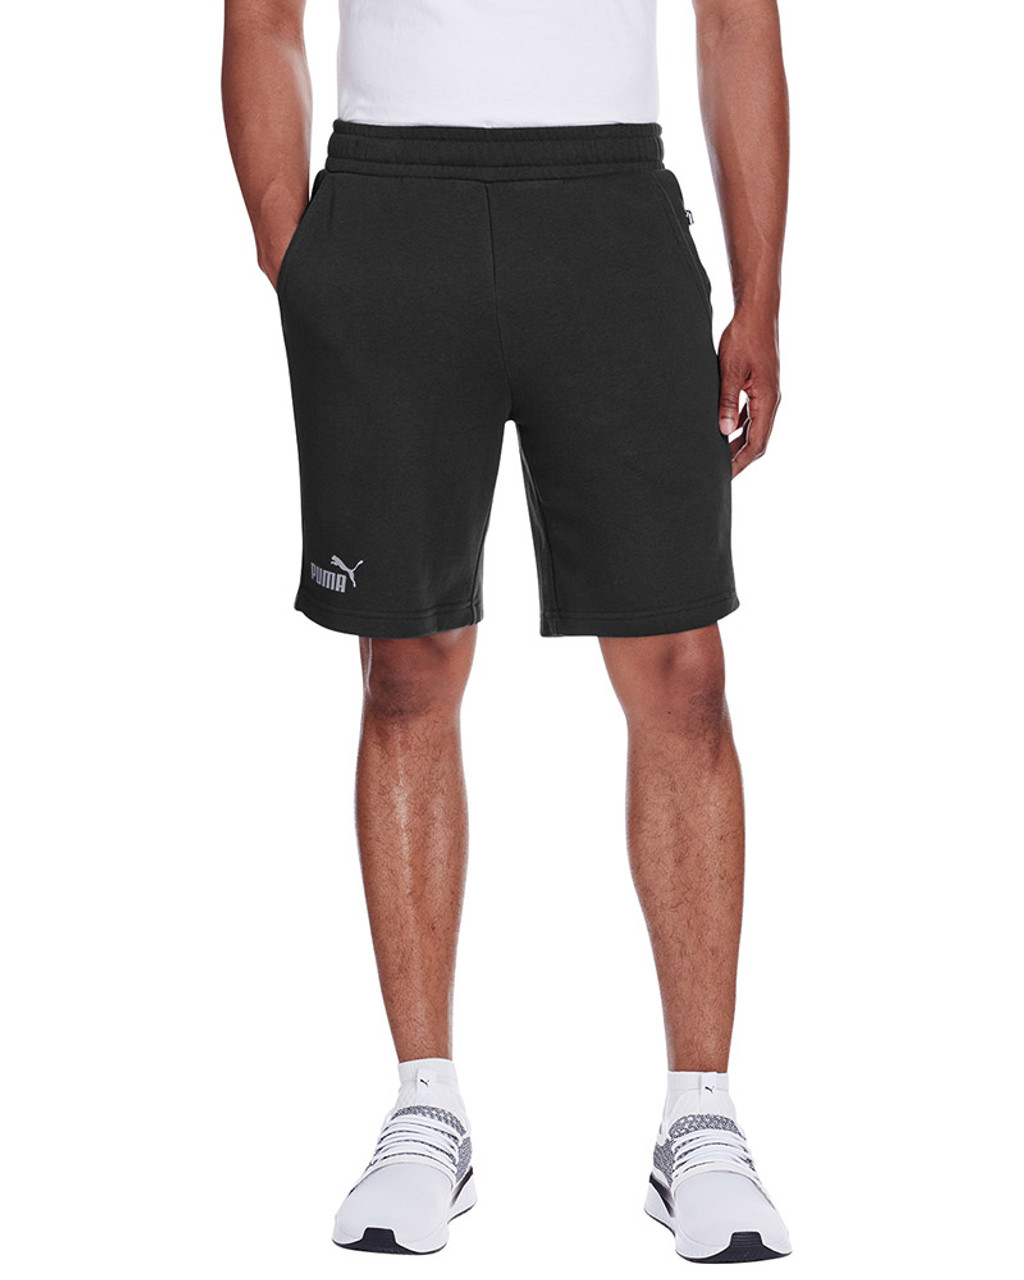 Puma Black/Smoke Pearl - 582008 Puma Sport Essential Adult Bermuda Short | Blankclothing.ca